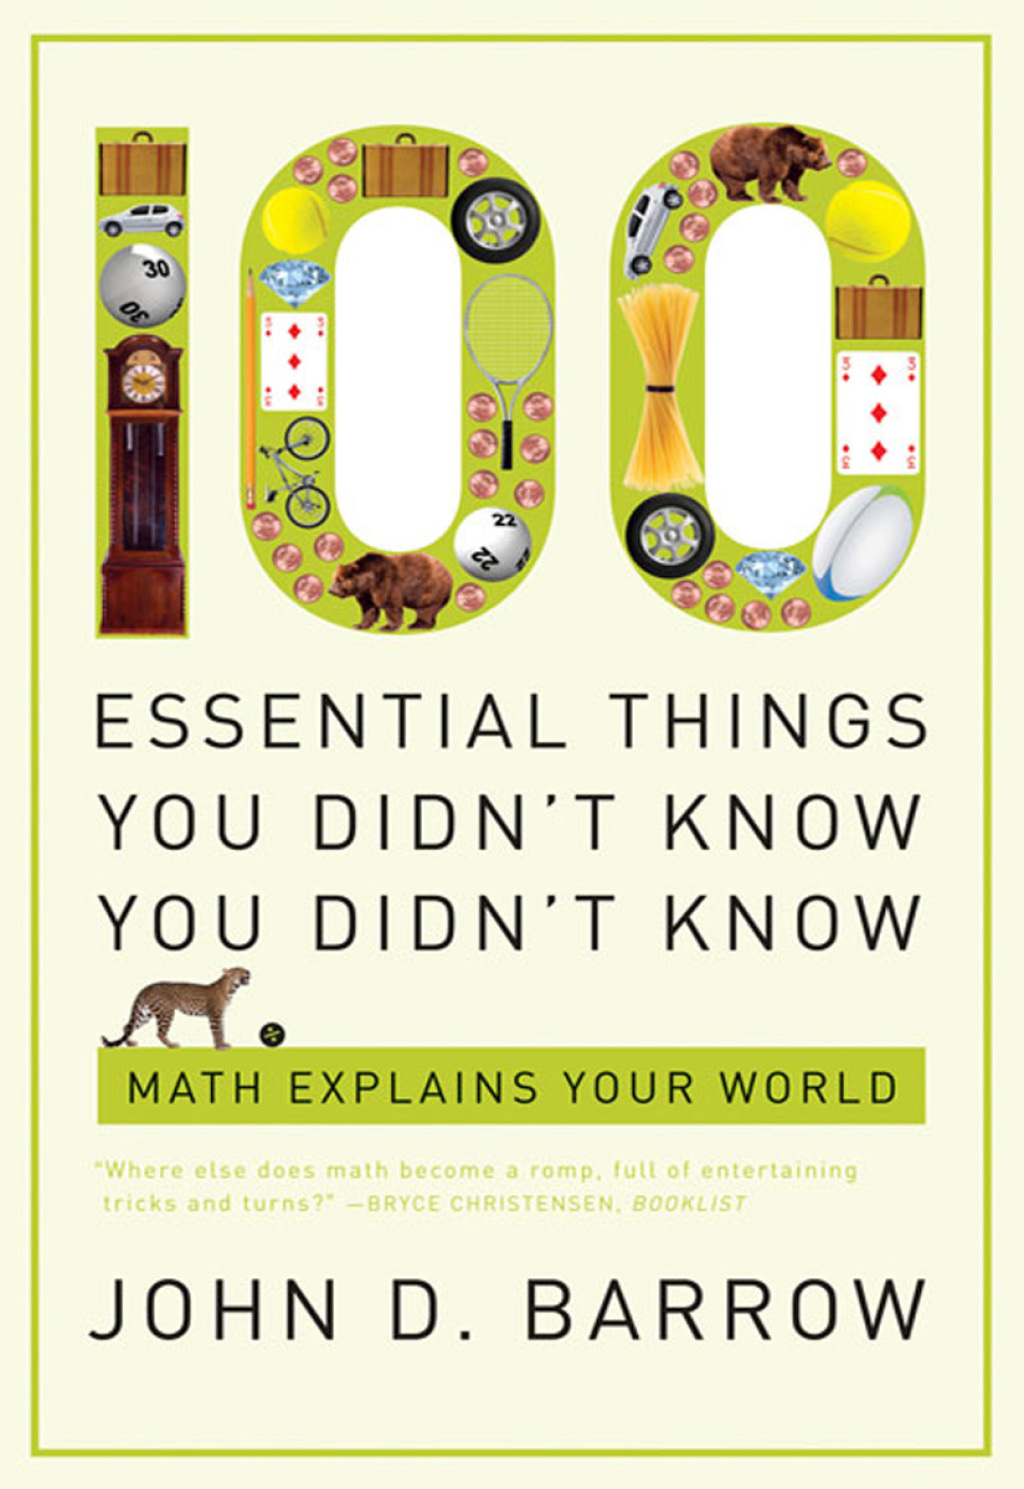 100 Essential Things You Didn't Know You Didn't Know: Math Explains Your World (ebook) eBooks